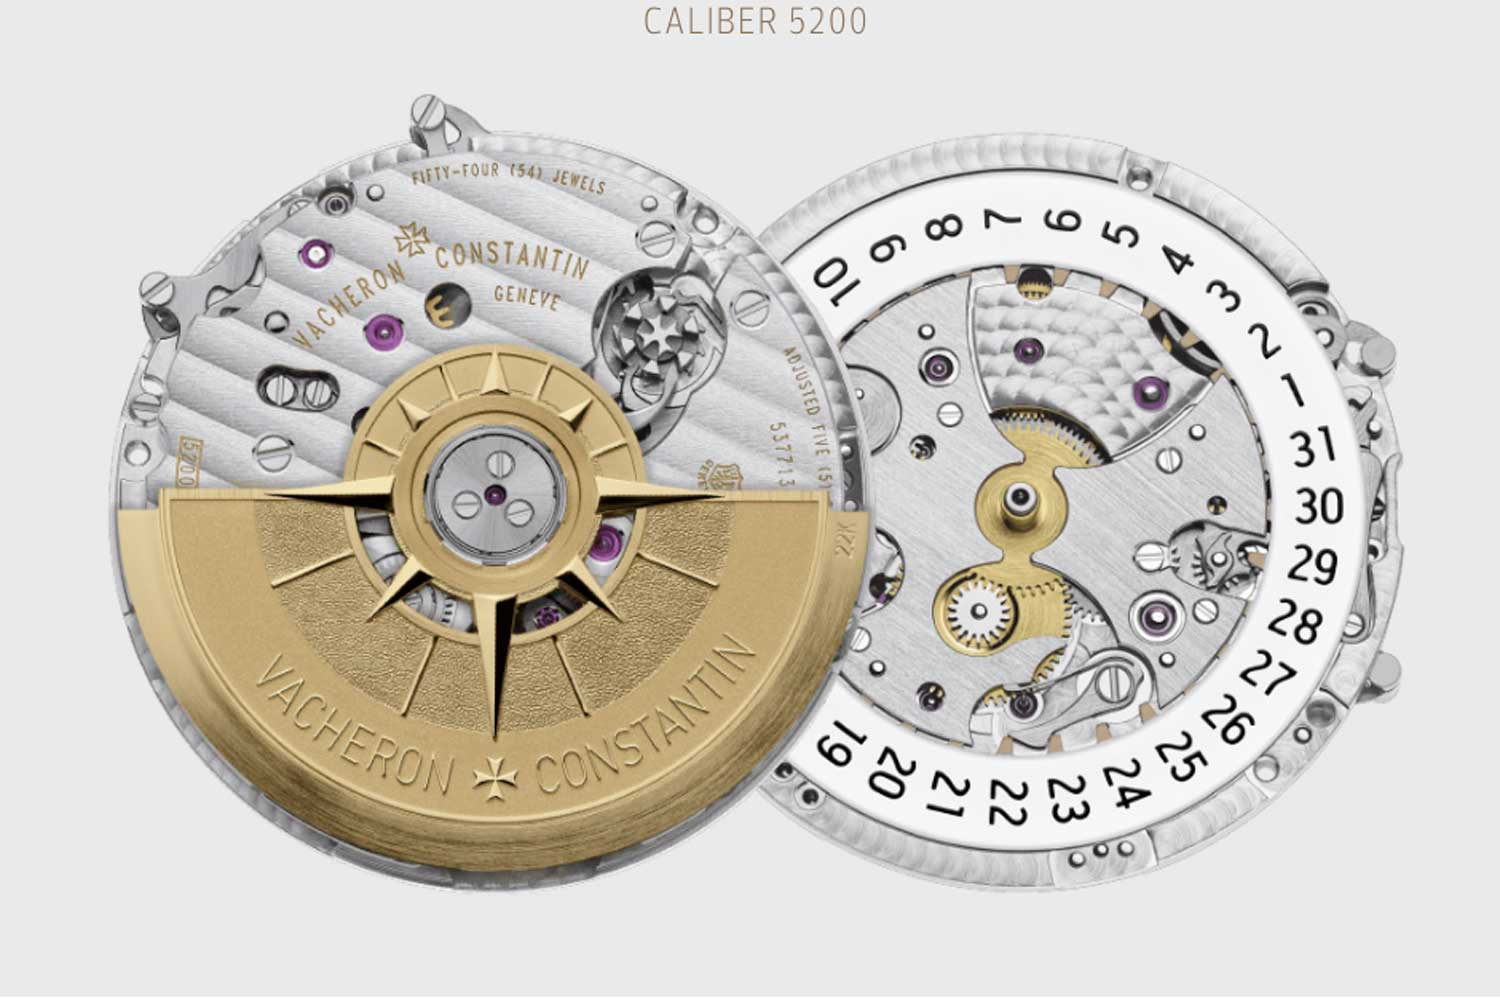 ertical clutch engagement systems, such as the one in this Vacheron Constantin 5200 are usually hidden under the chronograph bridge and the oscillating mass. Note the extremely different engineering and design approach versus the brand's artistic cal. 5100T of horizontal coupling design.